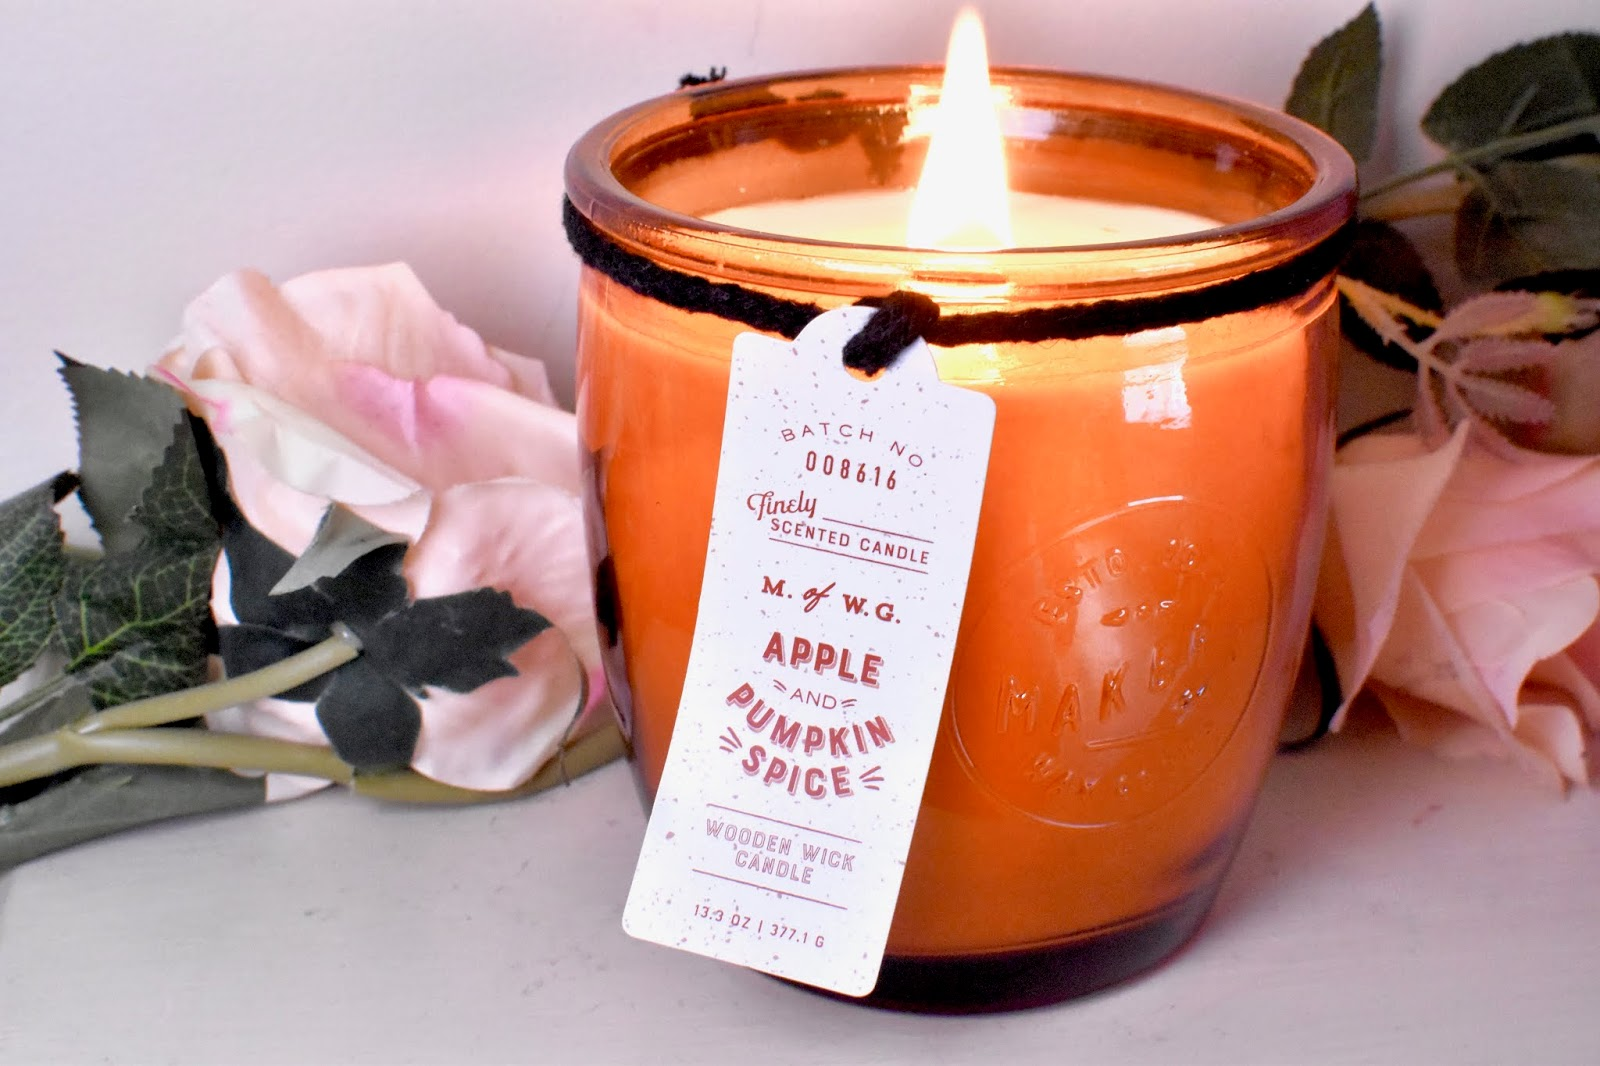 Apple and Pumpkin Spice M of W.G candle